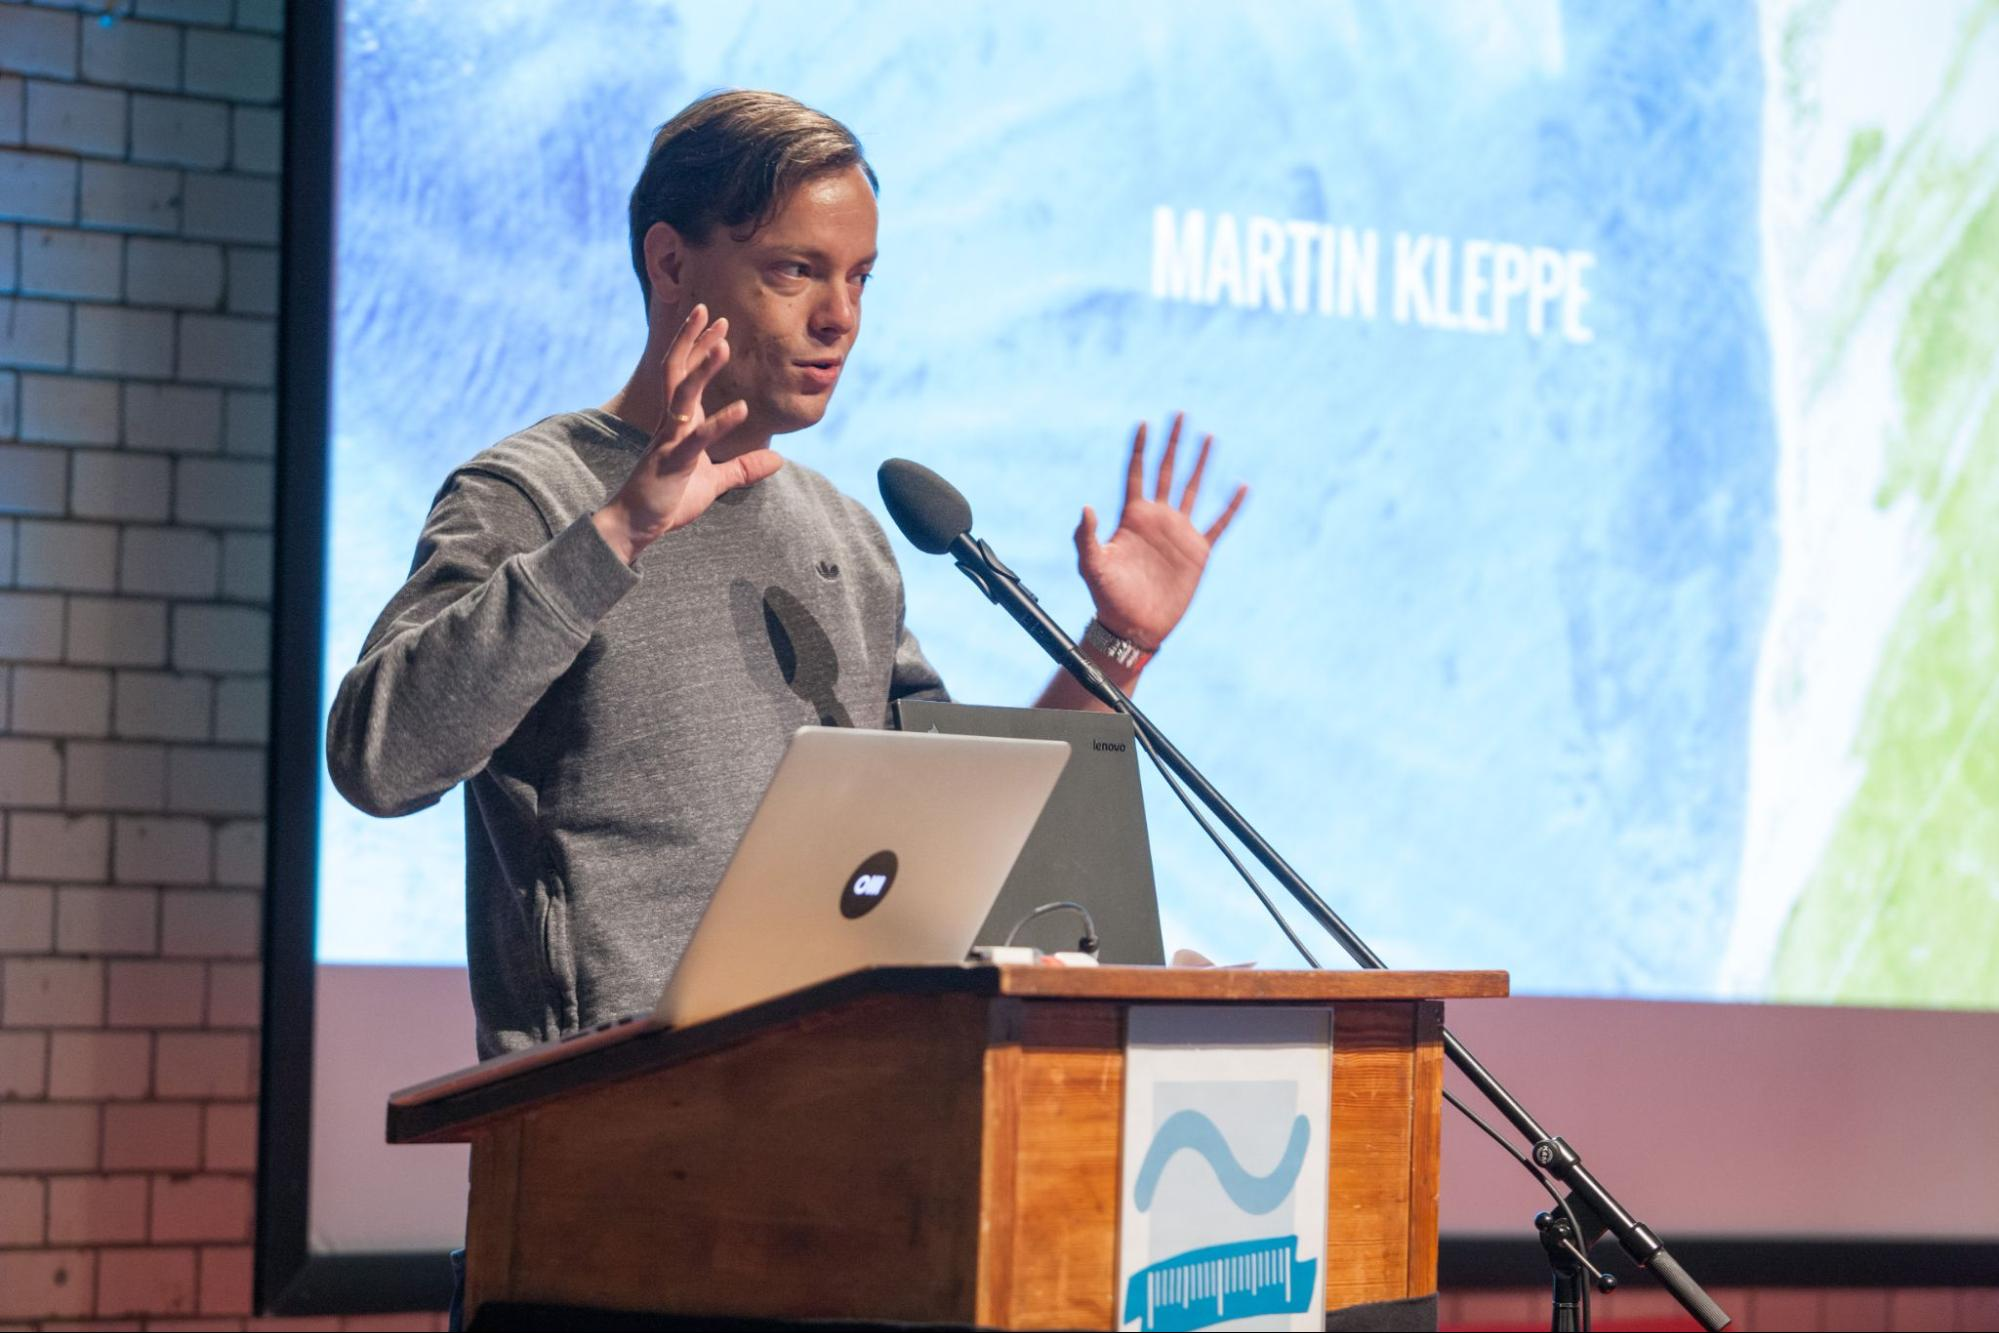 Image shows Martin Kleppe onstage behind his podium and laptop. His name is projected onto the screen behind him